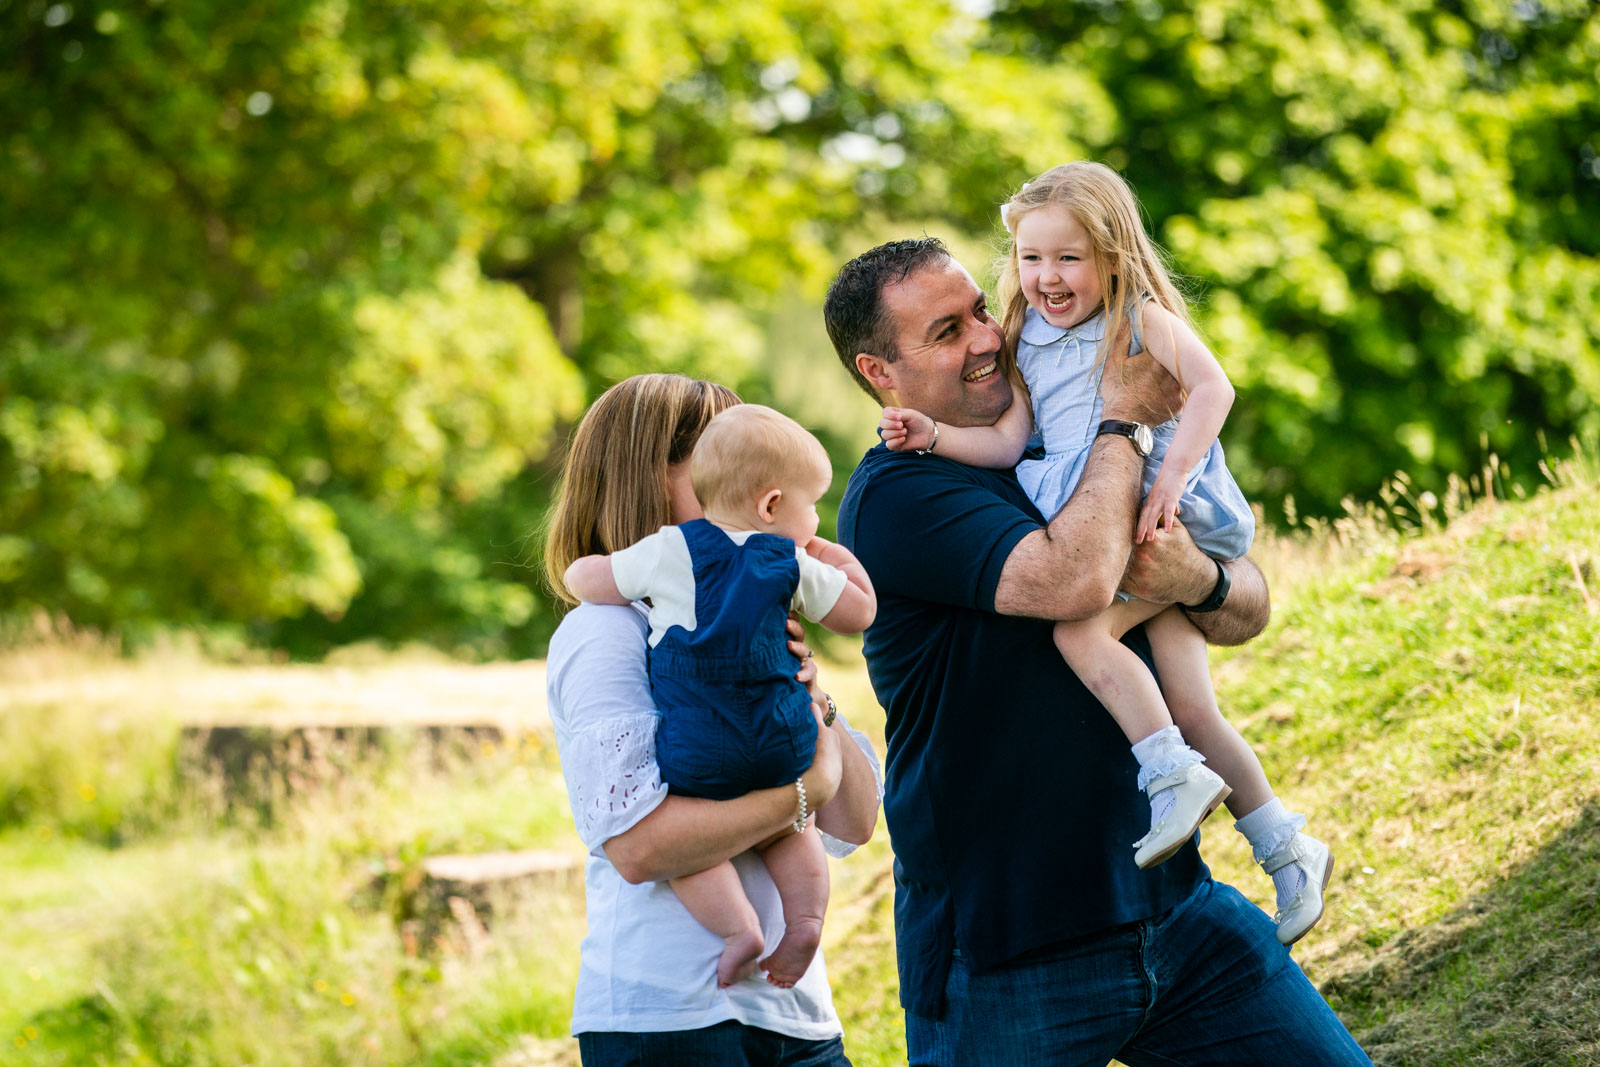 walker-family-session-bothwell-castle-glasgow-dearlyphotography (18 of 31).jpg